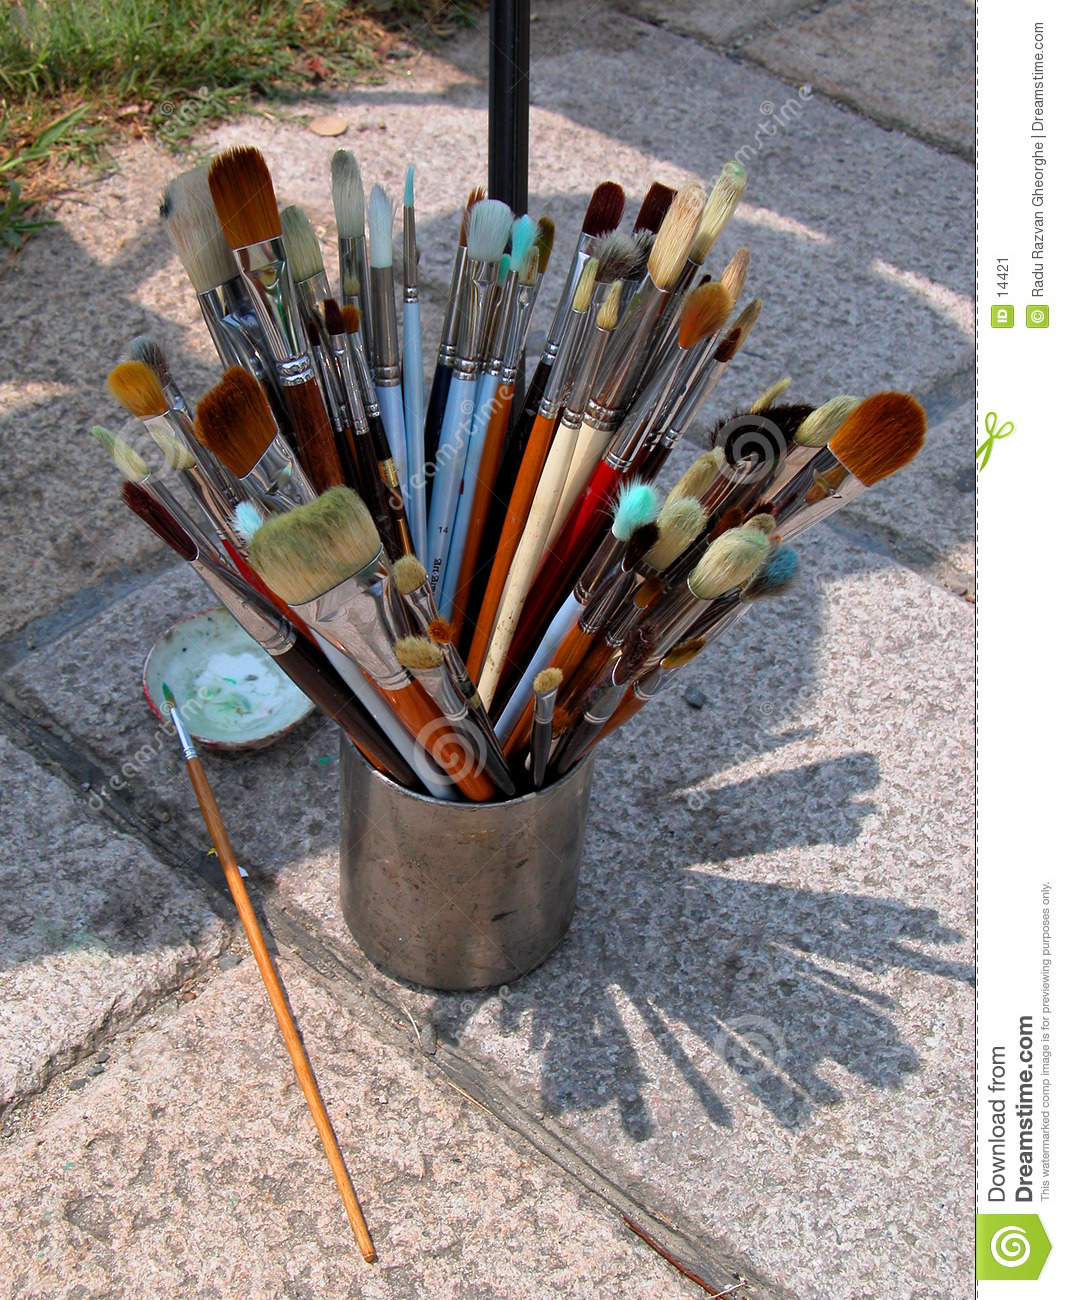 Painter brushes